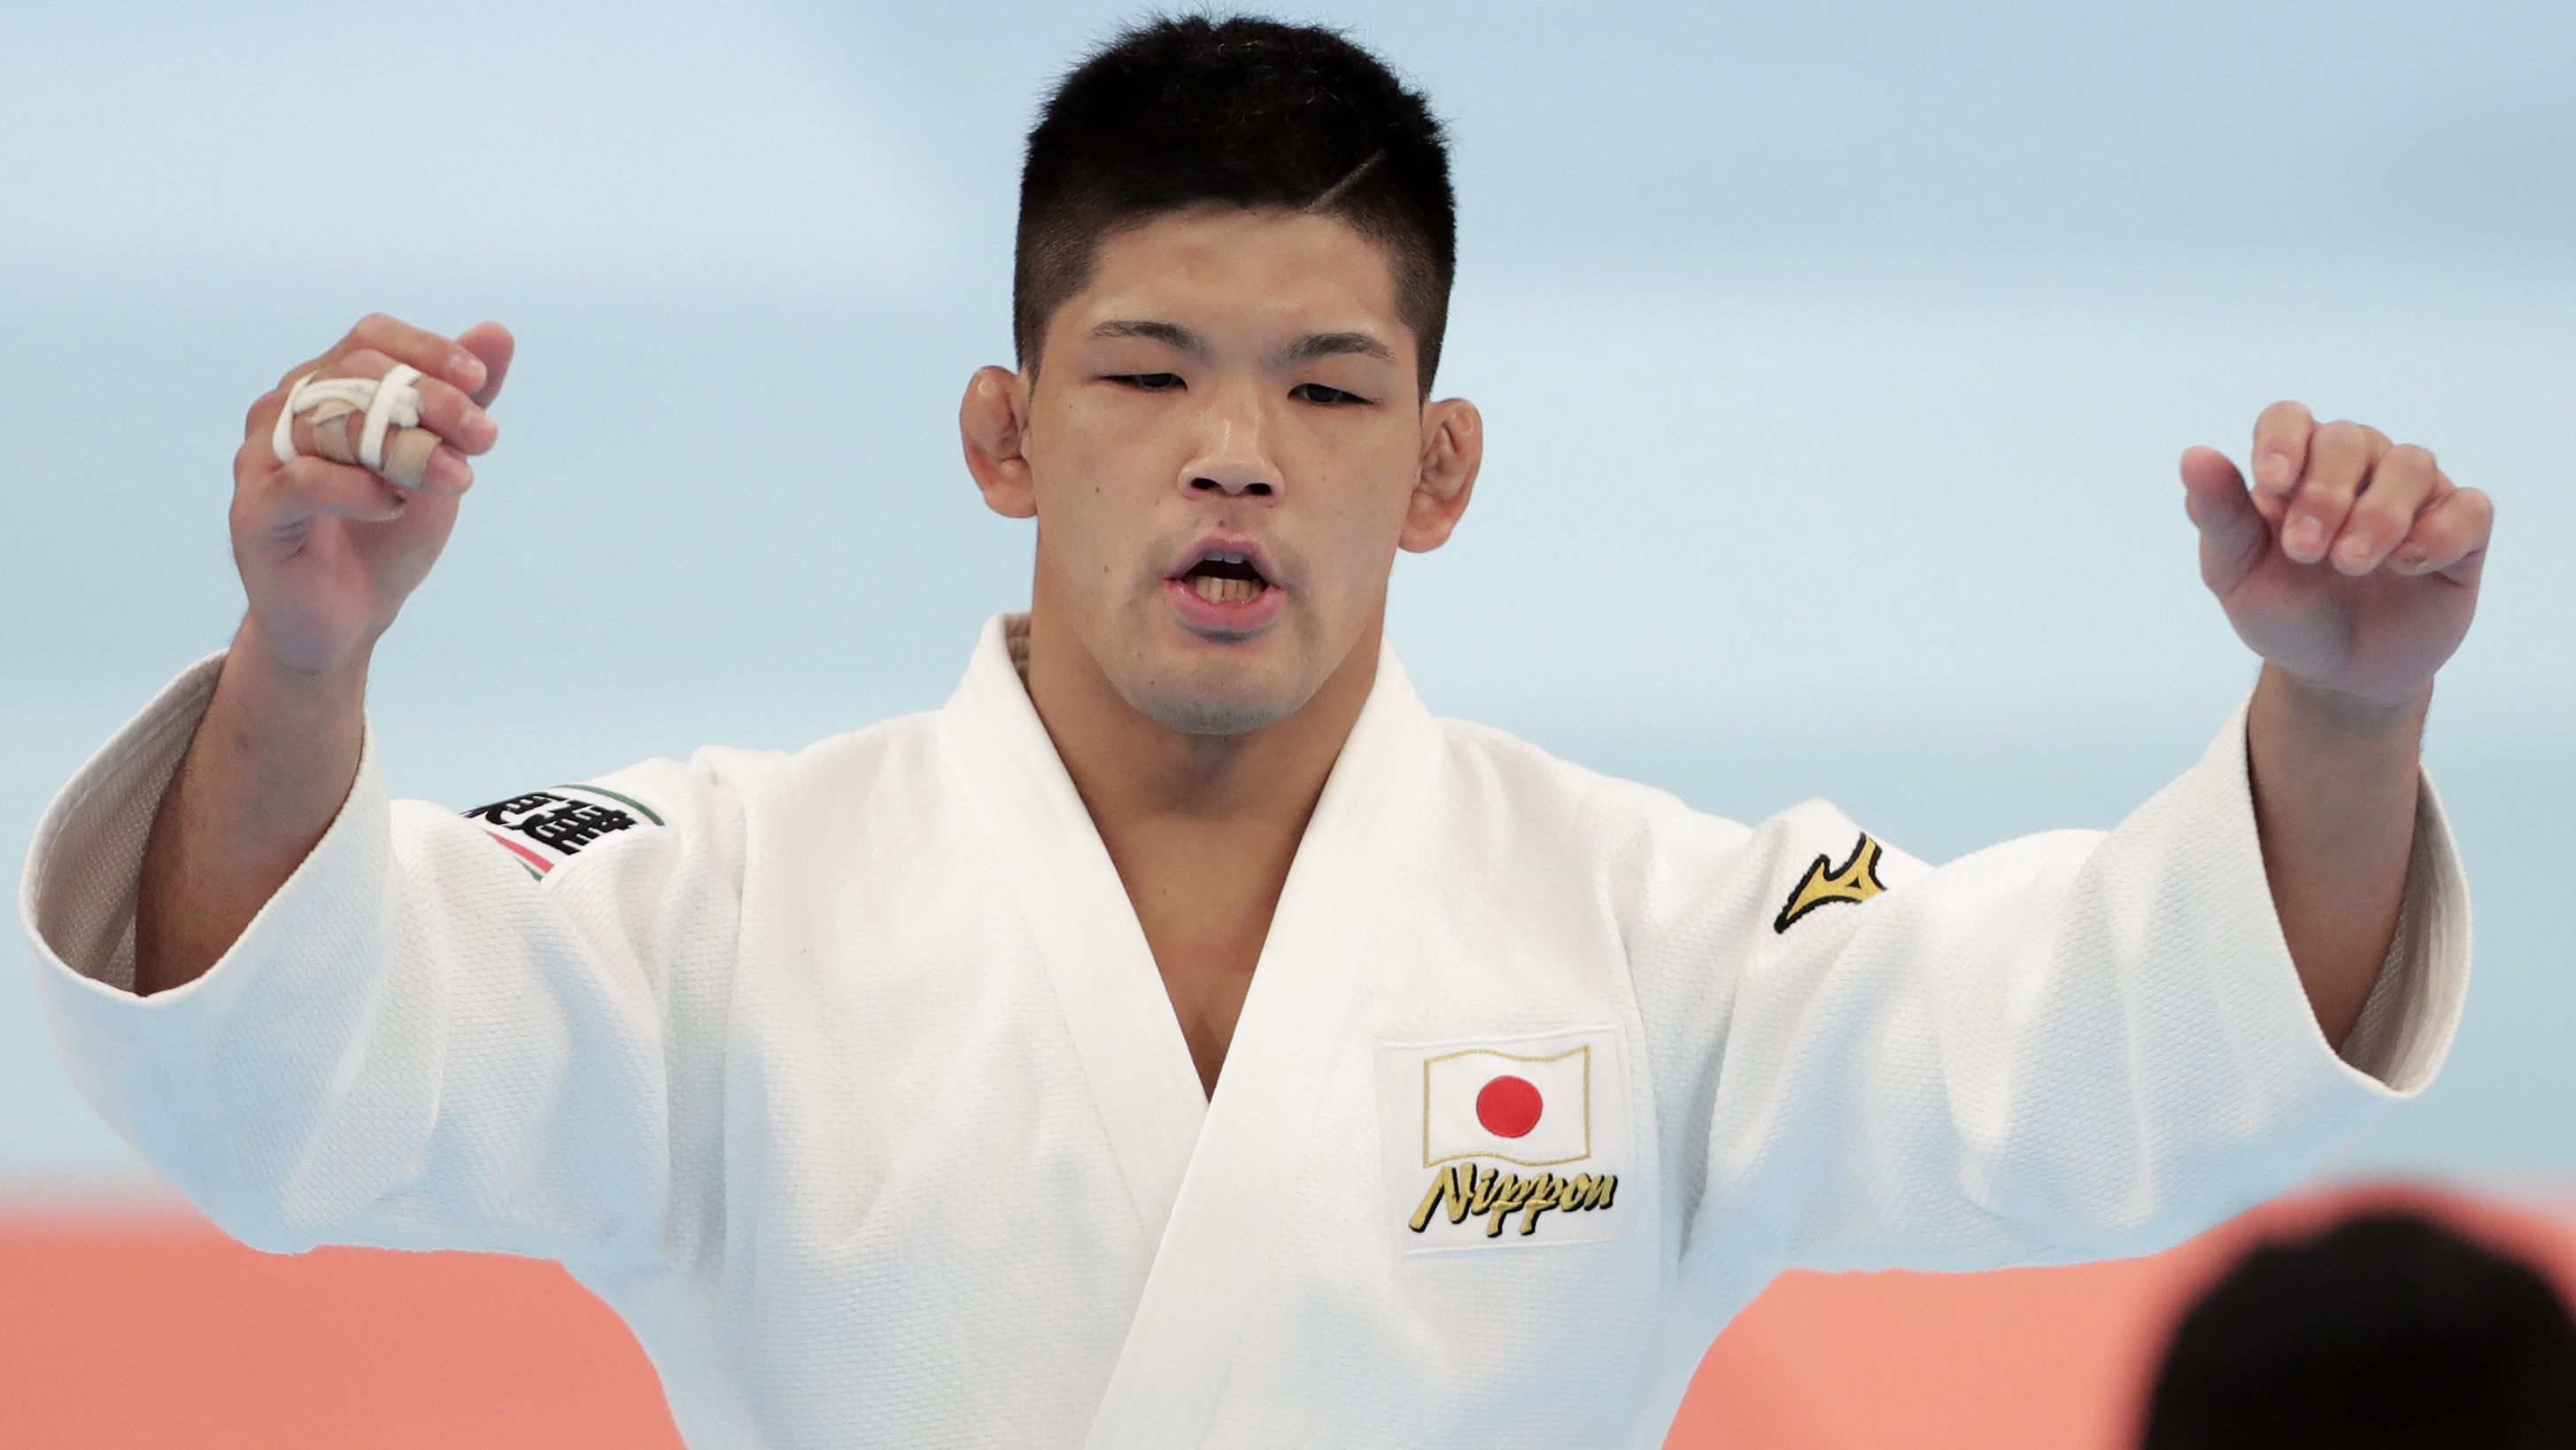 Judo superstar makes Olympic rivals cry